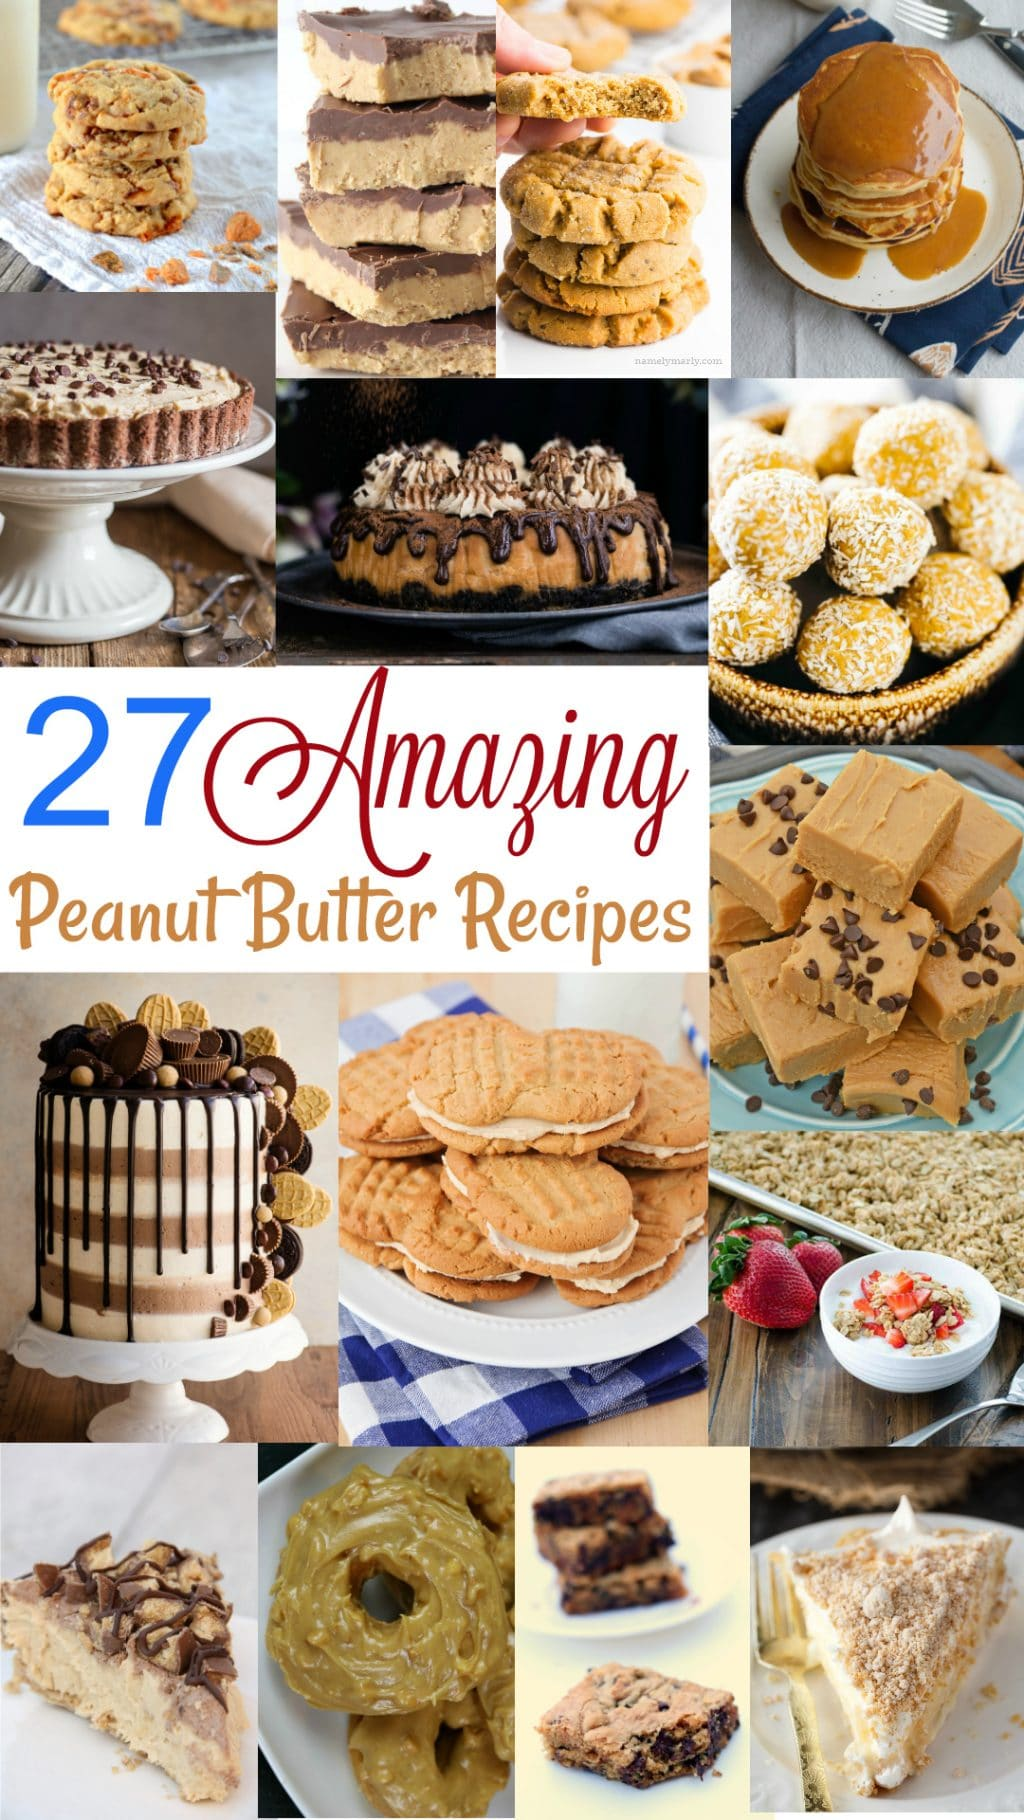 27 Amazing Peanut Butter Recipes